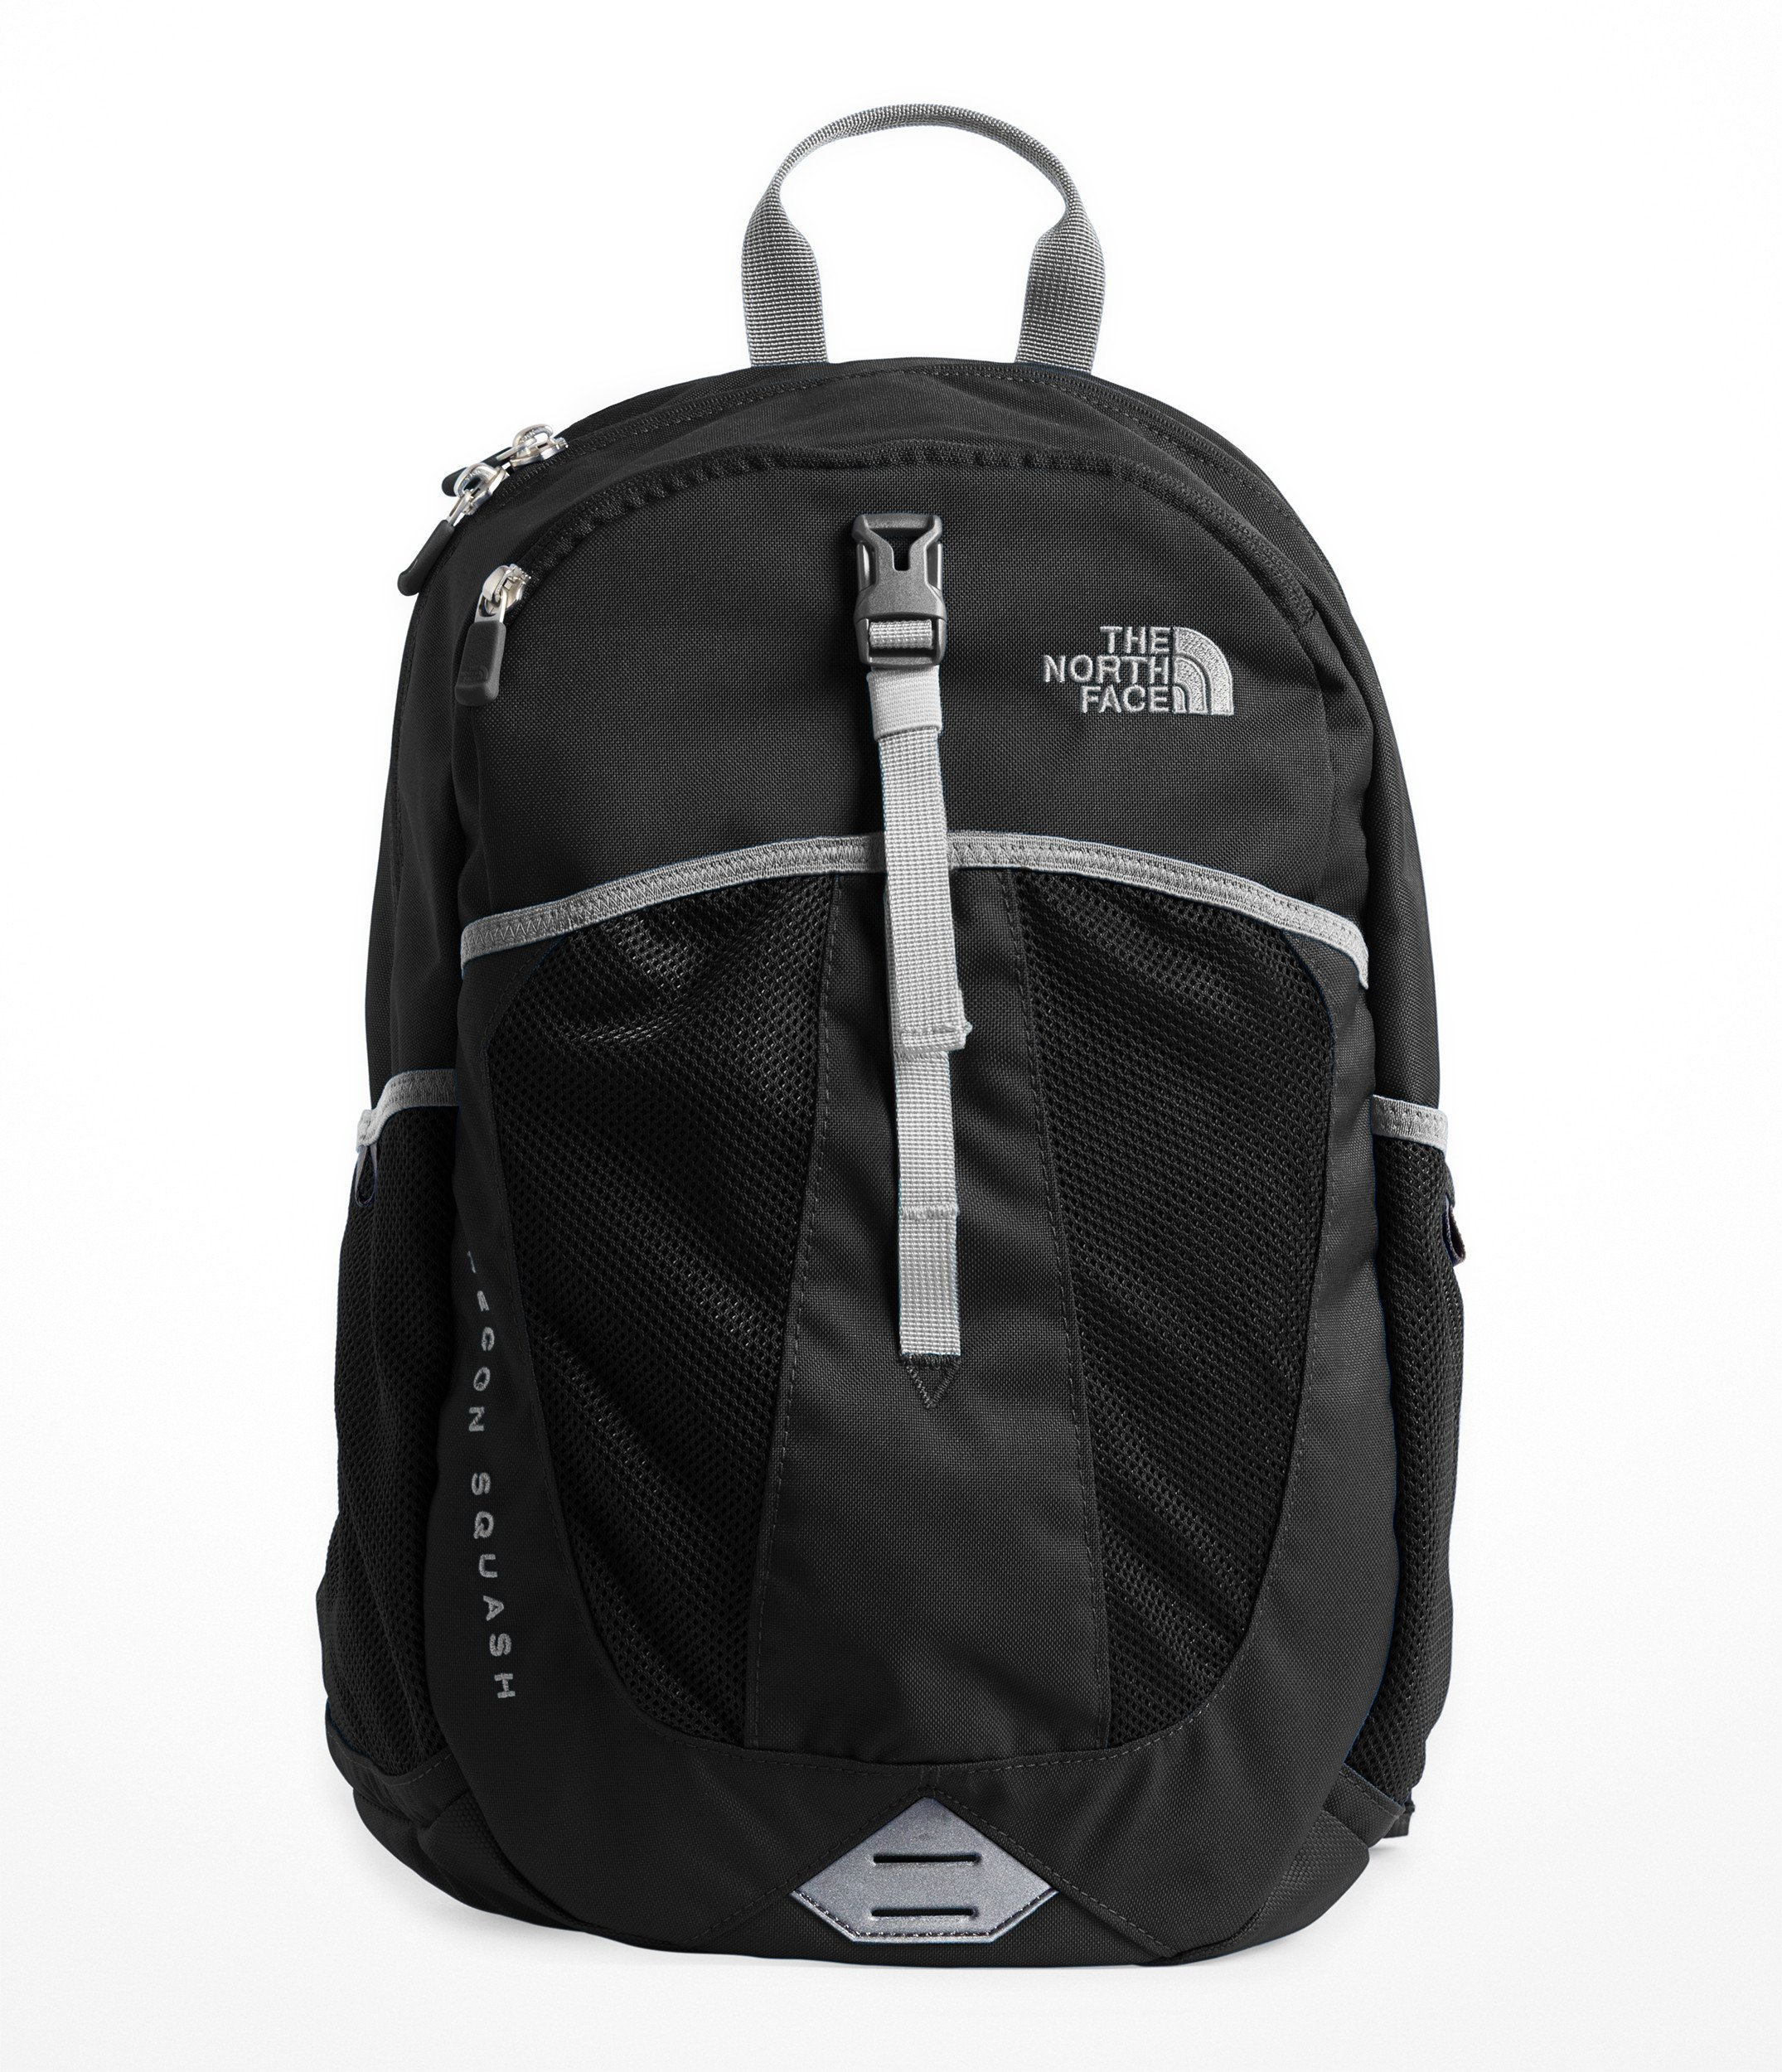 The North Face Youth Recon Squash Backpack, TNF Black/High Rise Grey by The North Face